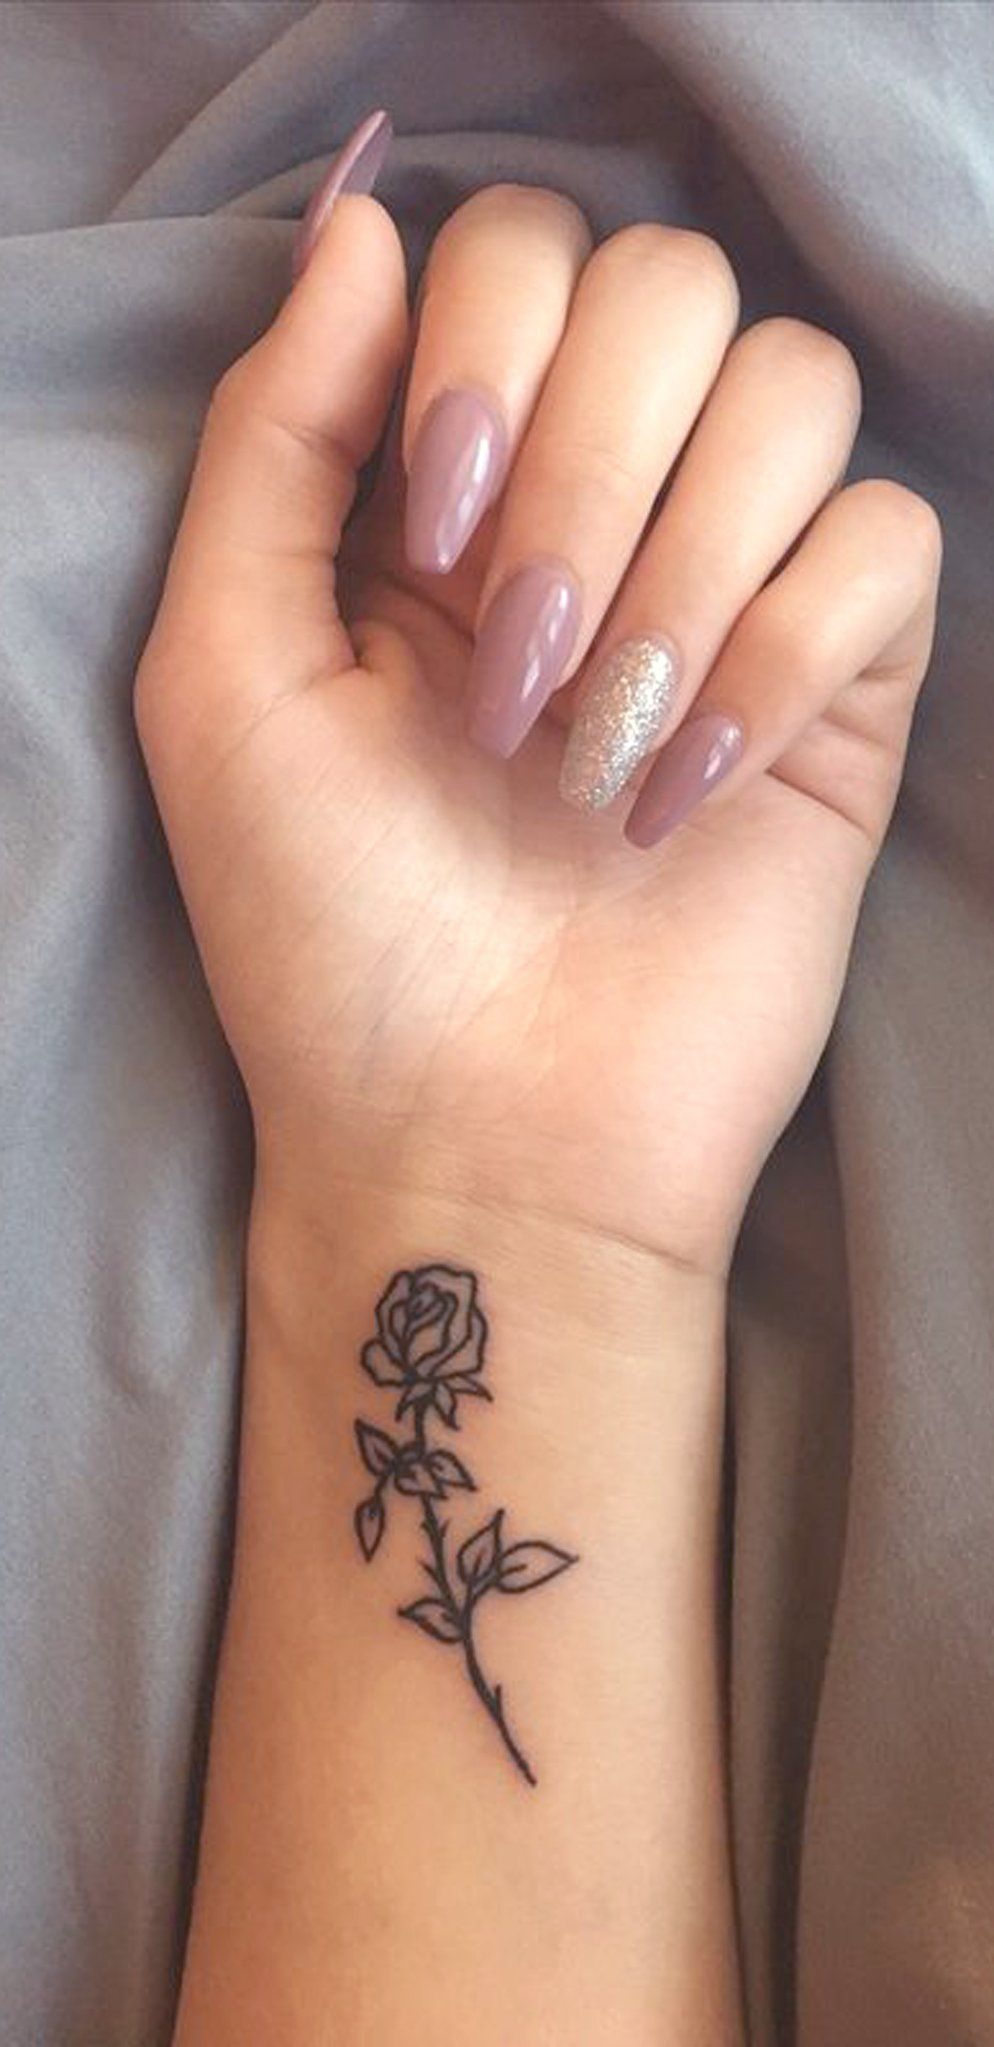 Small Rose Wrist Tattoo Ideas For Women Minimal Flower Arm within measurements 994 X 2047